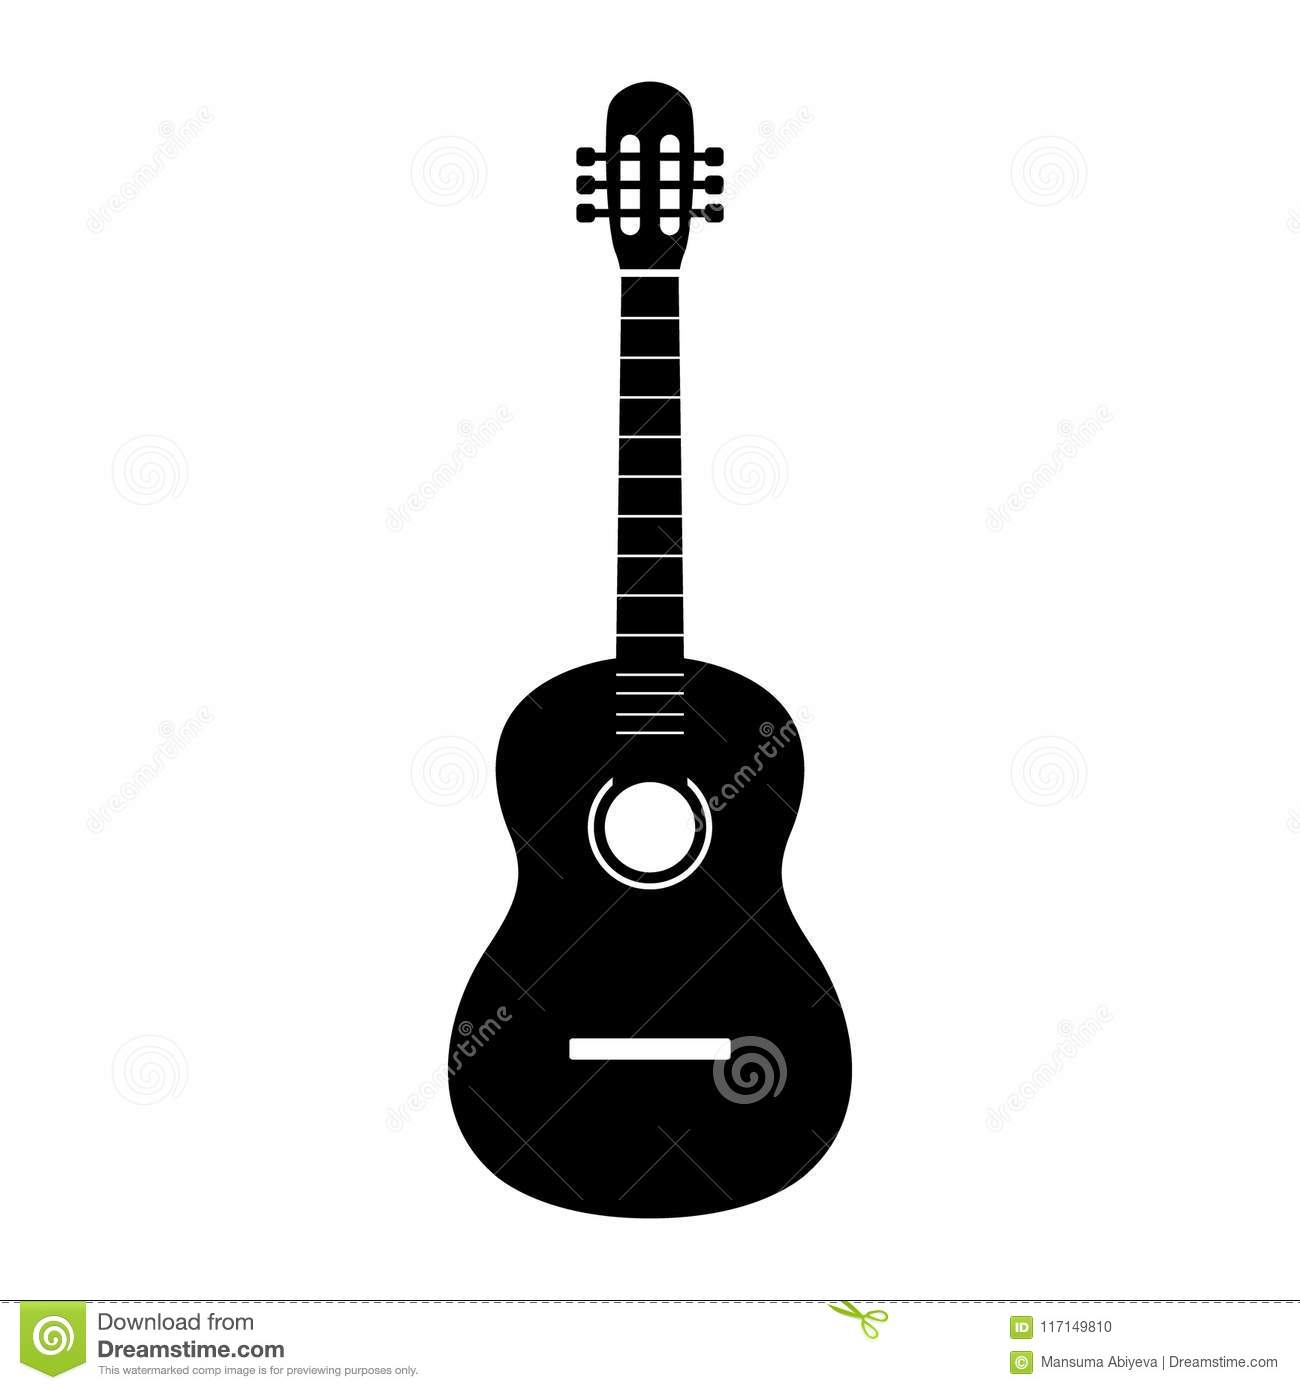 Guitar icon vector, Acoustic musical instrument sign Isolated on white background. Trendy Flat style for graphic design